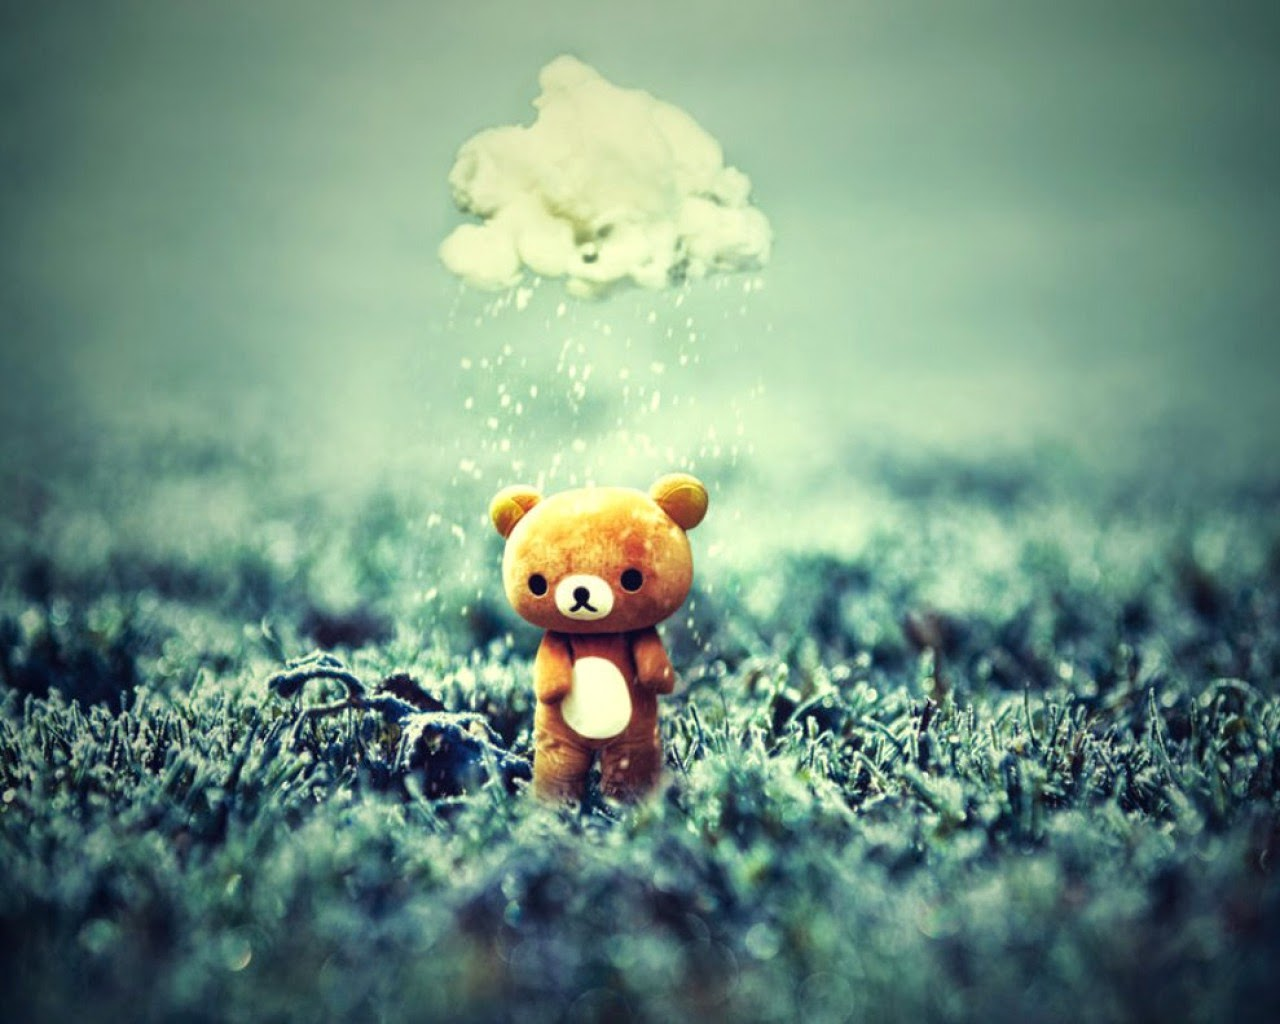 sad-Teddy-bear-love-failure-walking-alone-in-rain-1280x1024.jpg